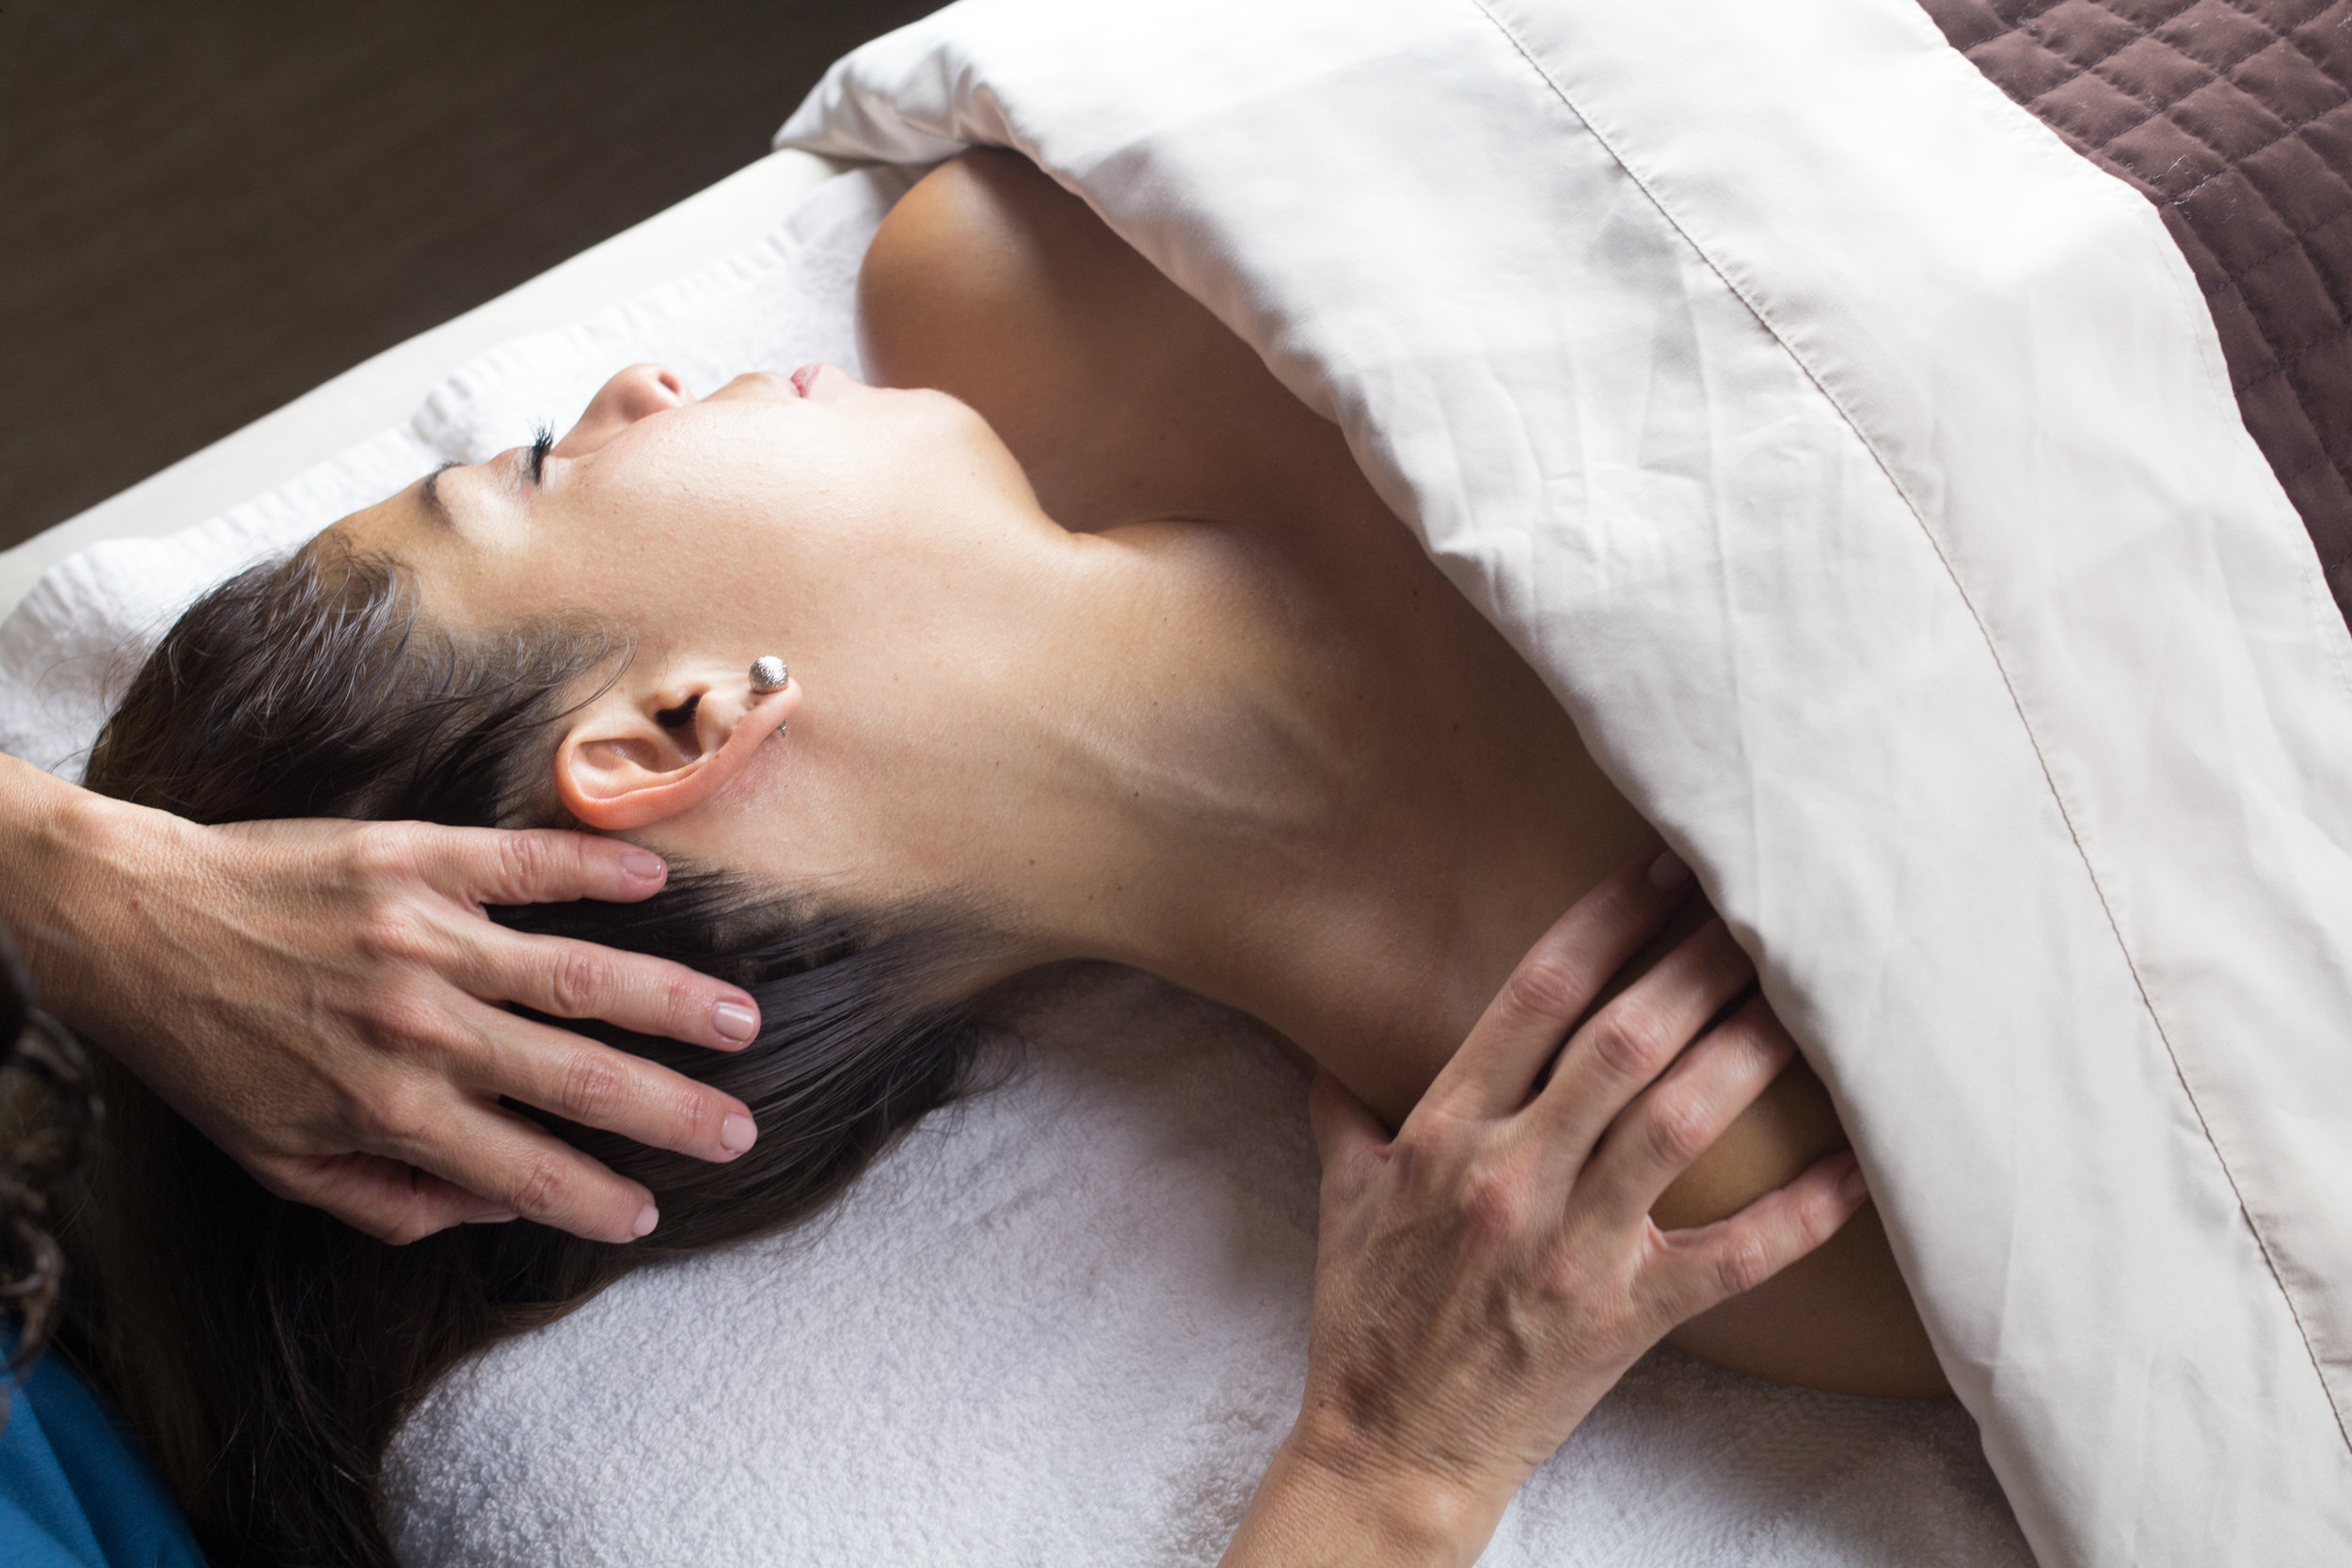 Advanced Massage - $79 | 60 min. $99 | 75 min. $119 | 90 min.A therapeutic deep tissue massage focusing on releasing chronic muscle tension through the use of elbows, forearms, and knuckles. Deep tissue massage can be beneficial for those experiencing low back pain, stiff neck, sore shoulders, limited mobility, and repetitive strain.While the movement is slow and the pressure is firm, it is important to breathe deeply during this Advanced Massage to encourage the release of tension, restore movement, and create balance and symmetry in the body.